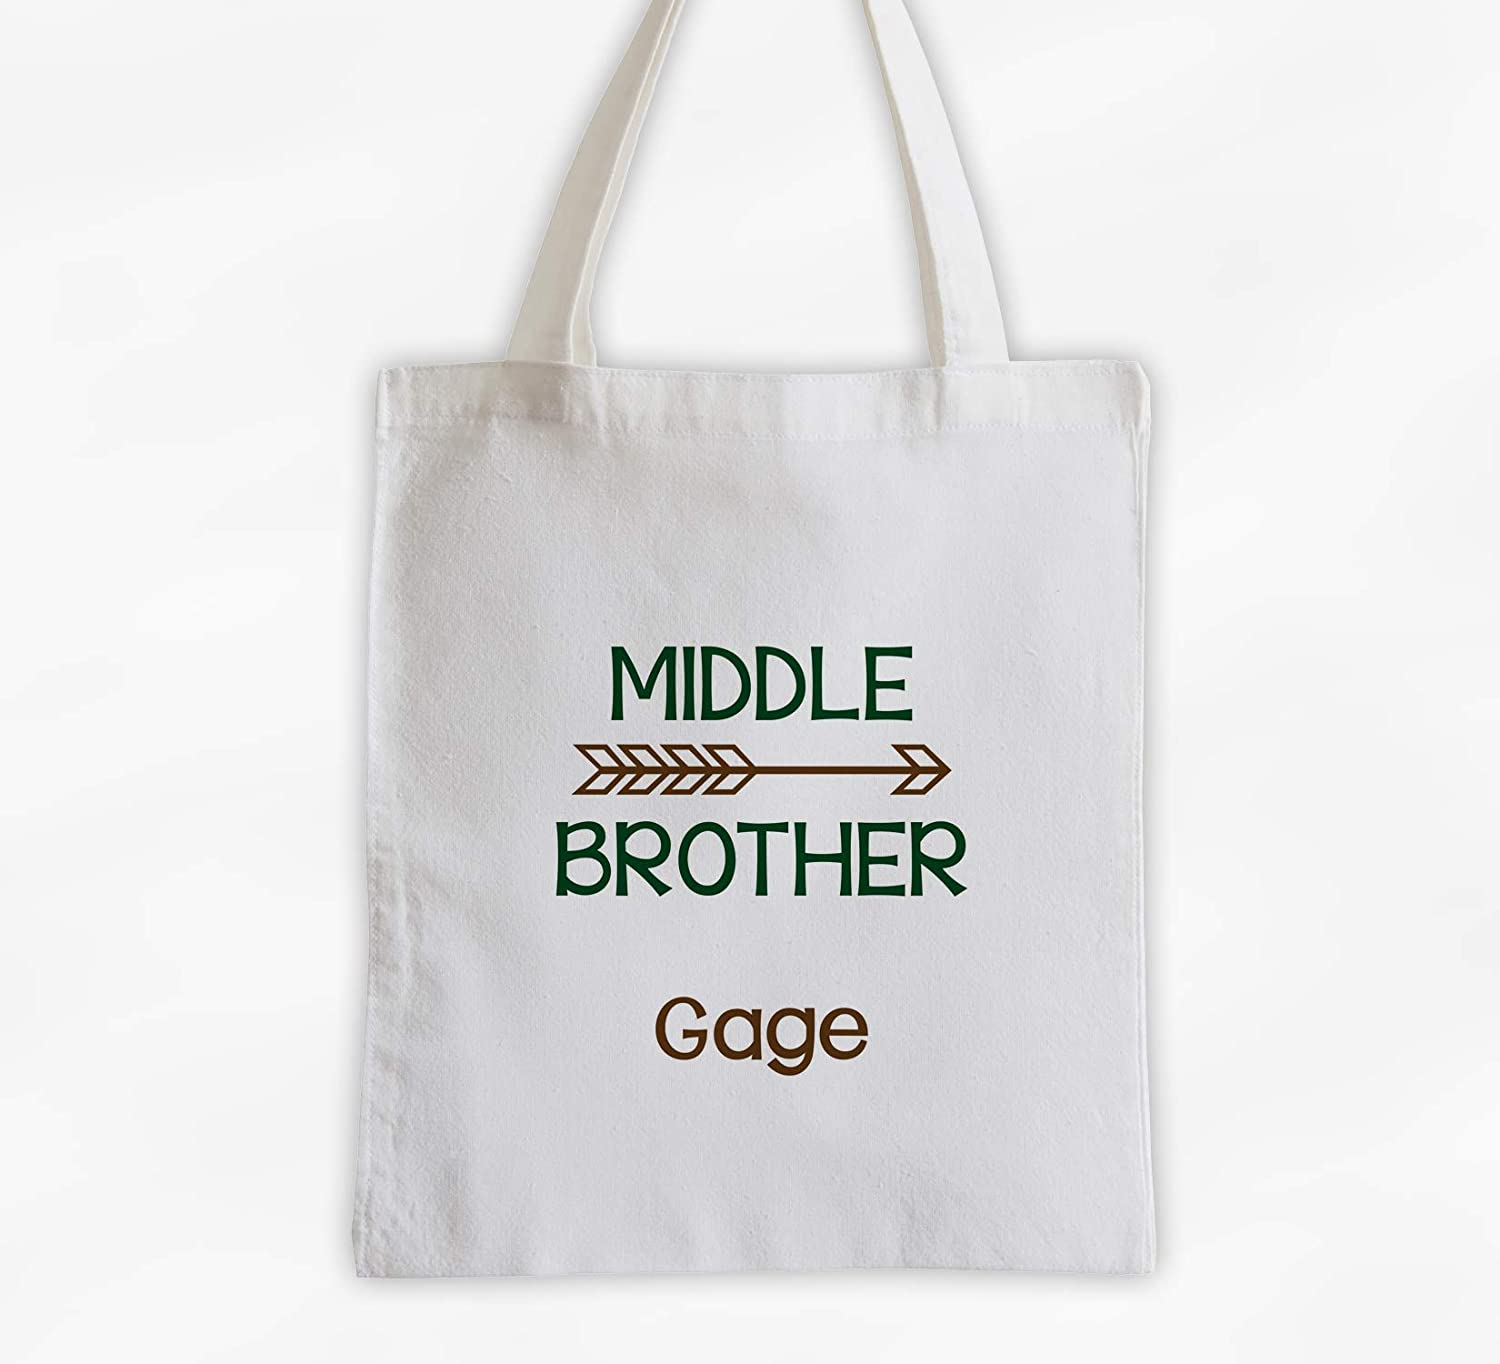 Middle Brother Tote Bag with Arrow - Ov online shop Cotton Personalized Nashville-Davidson Mall Boys